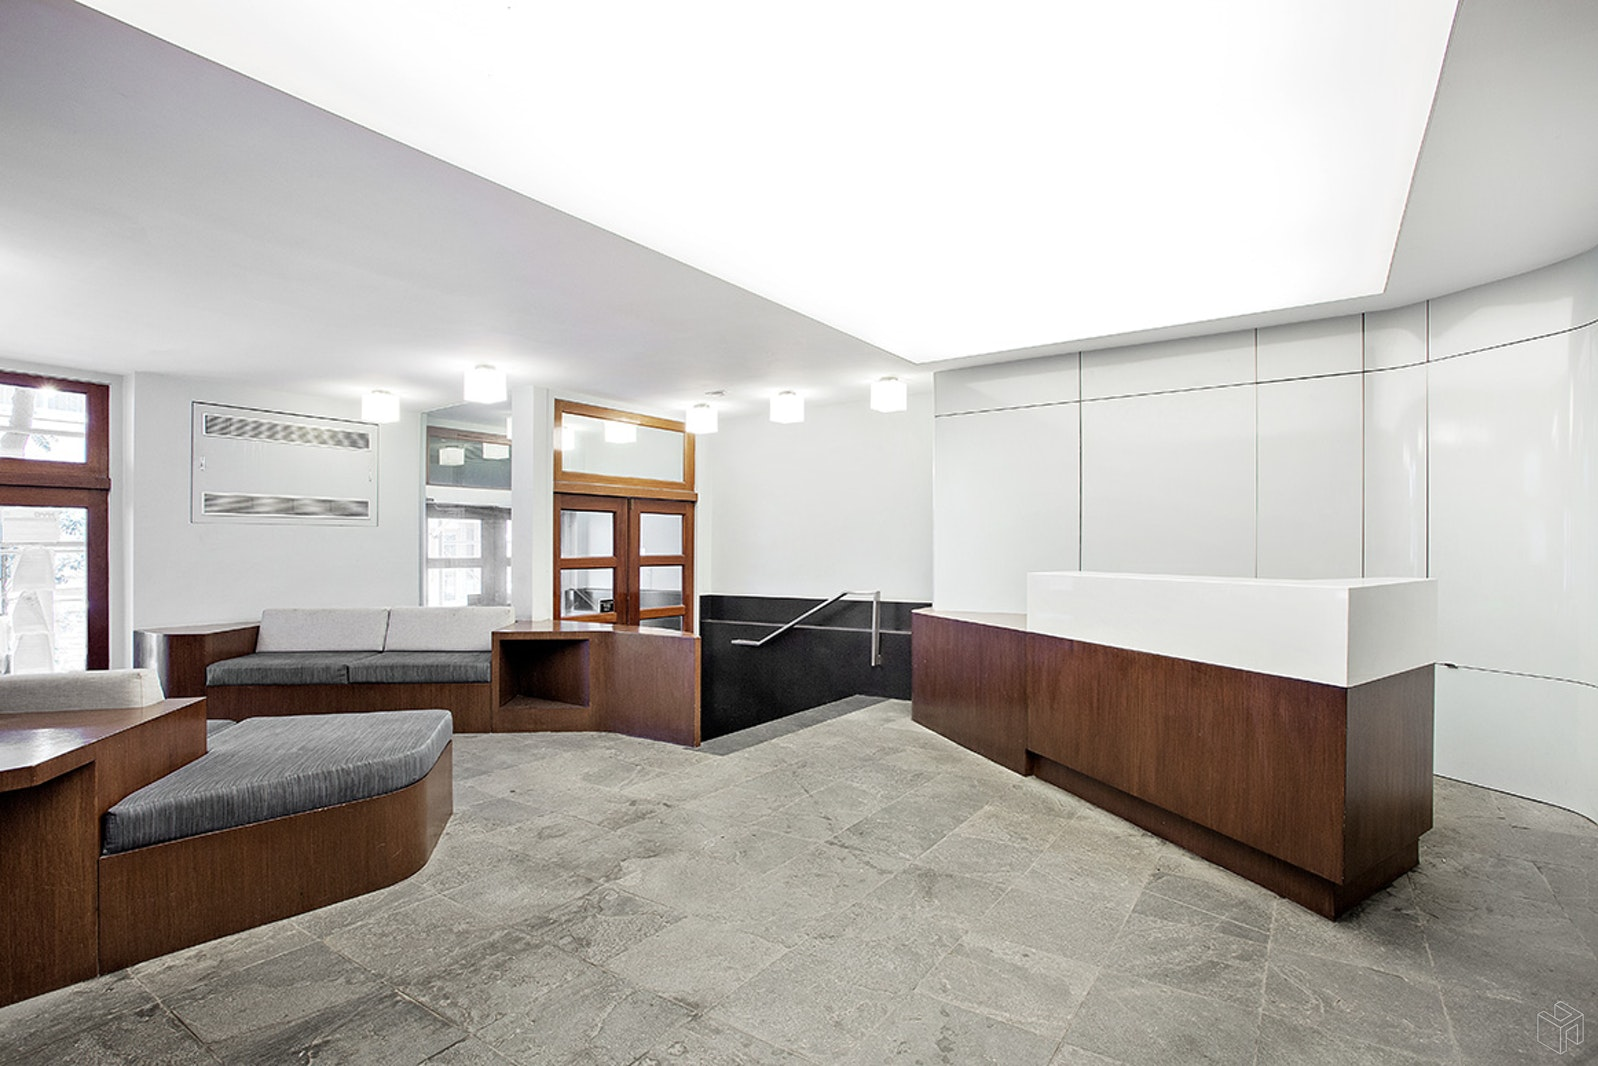 130 Jane Street 5/6b, West Village, NYC, 10014, $2,295,000, Property For Sale, Halstead Real Estate, Photo 4